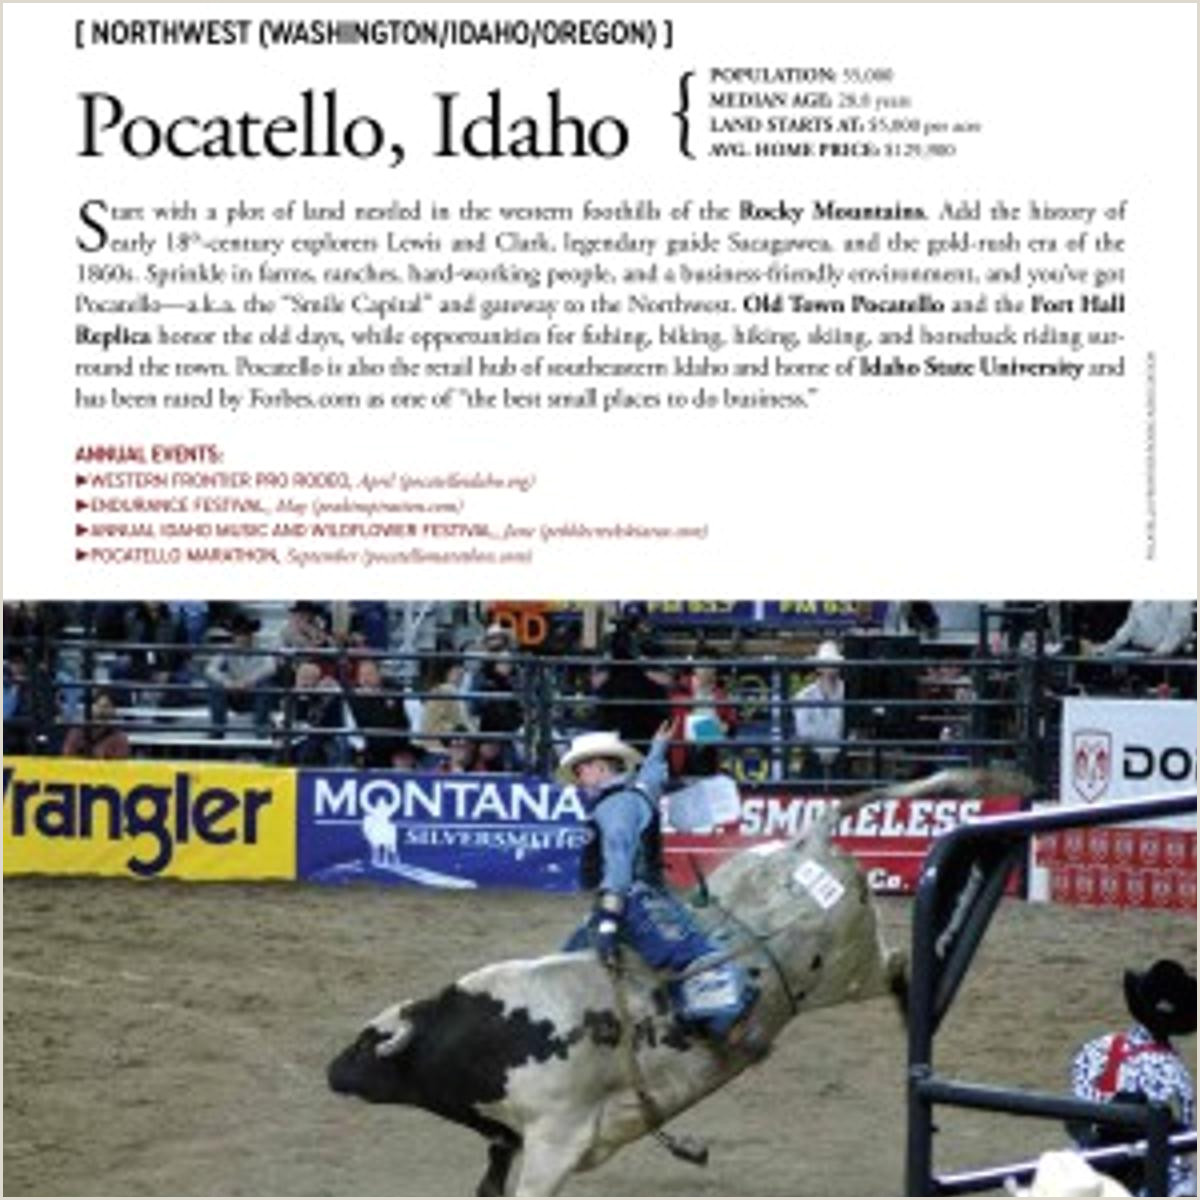 Forbes Best Business Cards Pocatello Makes National Cowboy Town Ranking